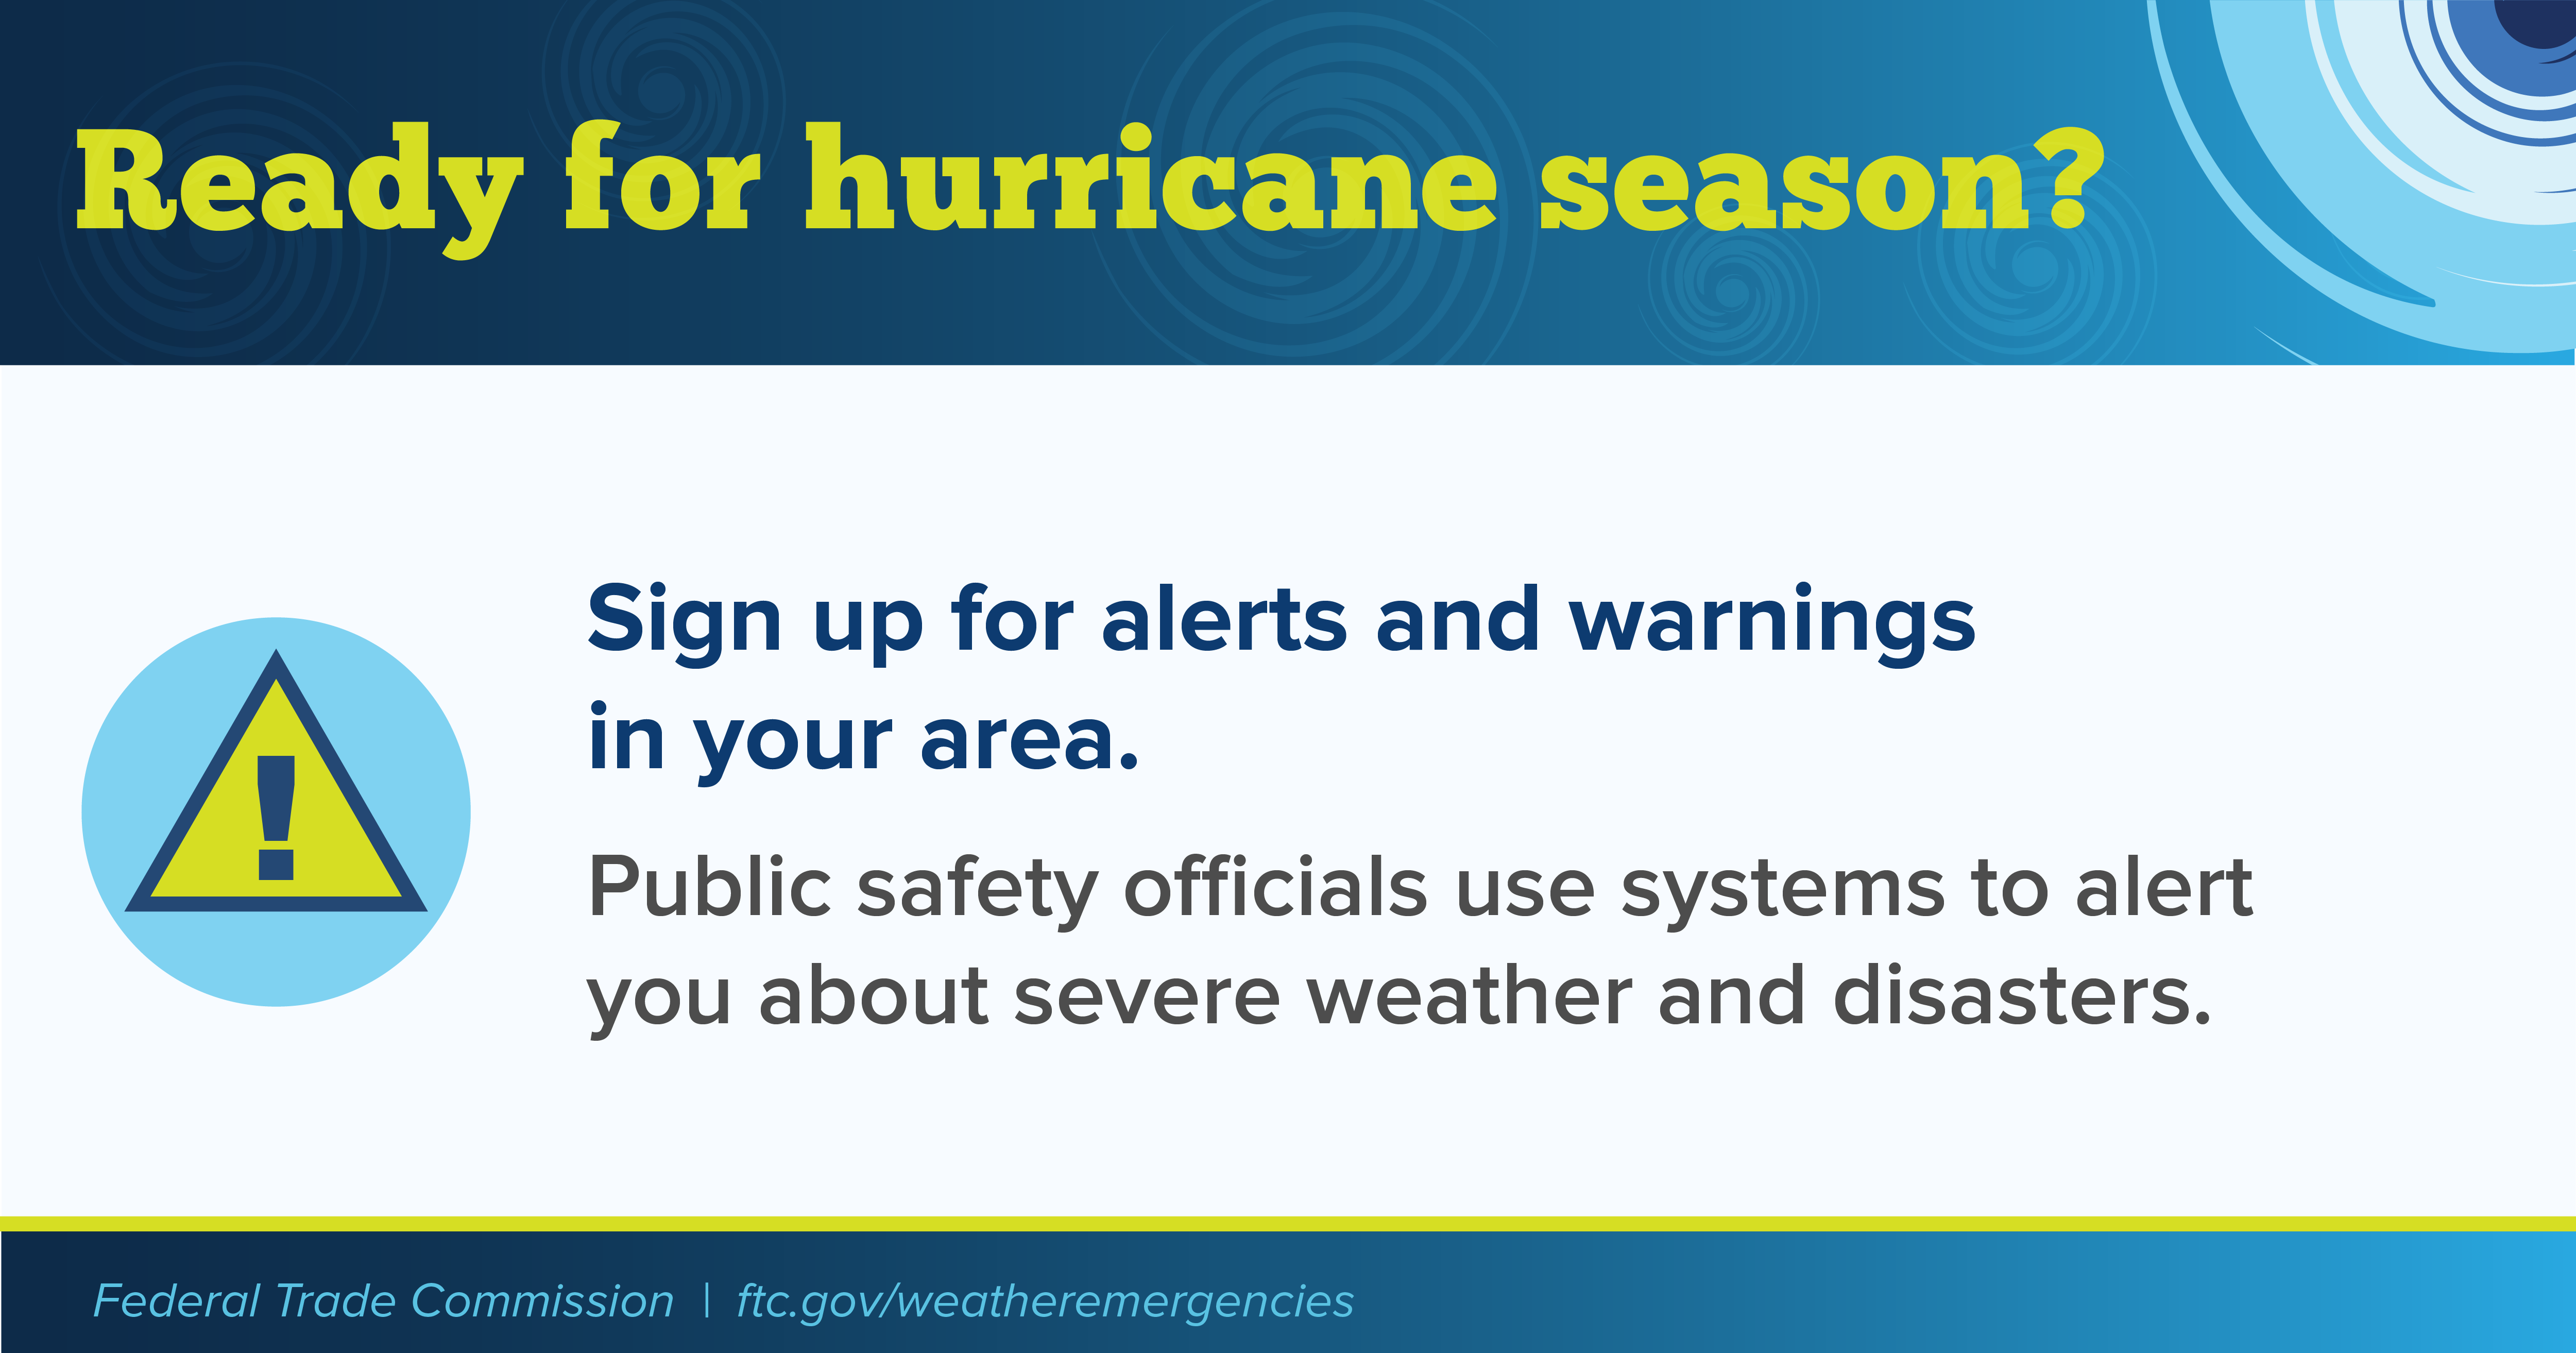 Sign up for alerts and warnings in your area